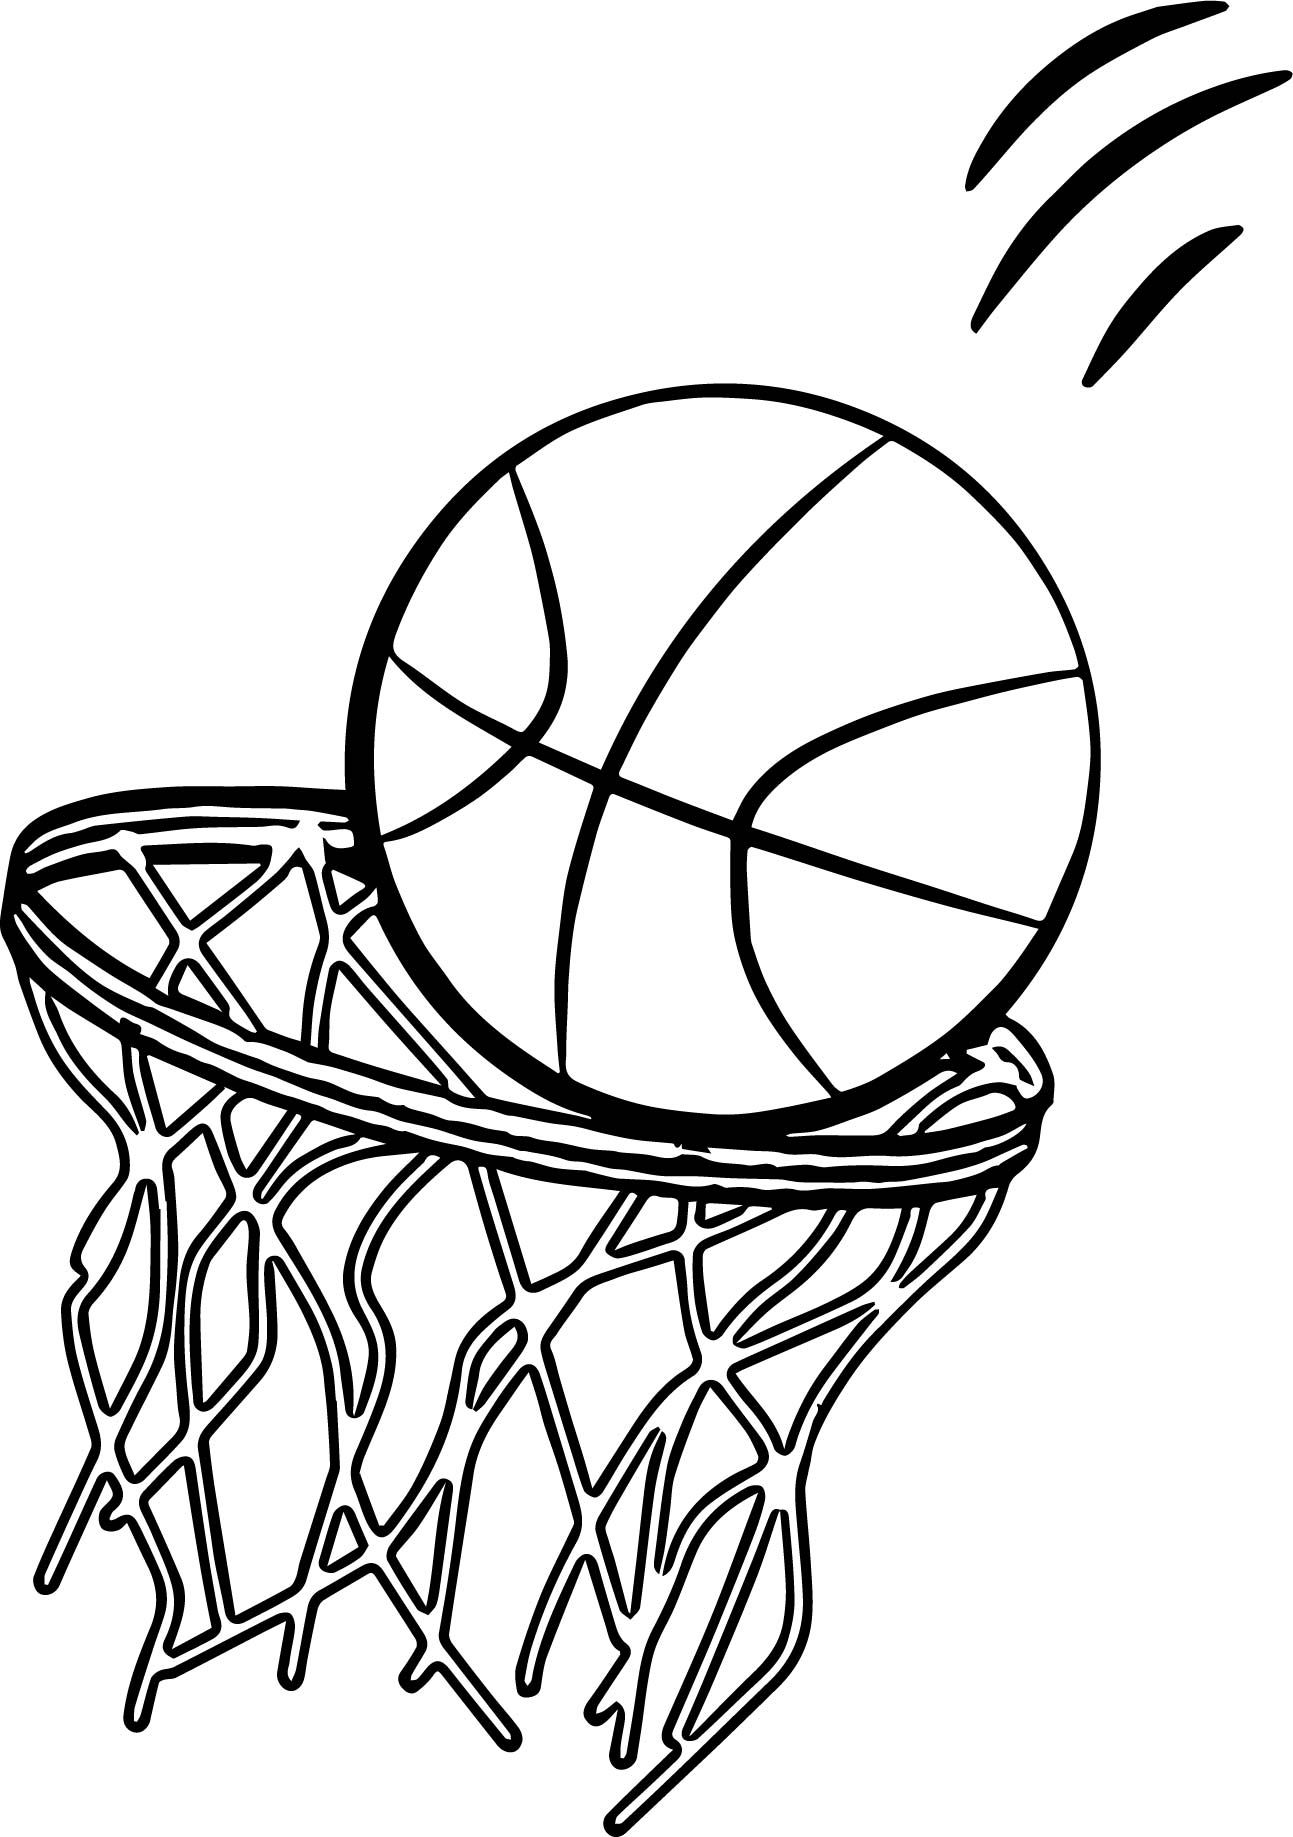 Awesome Going Basketball Ball Playing Basketball Coloring Page Basketball Drawings Basketball Ball Sports Coloring Pages